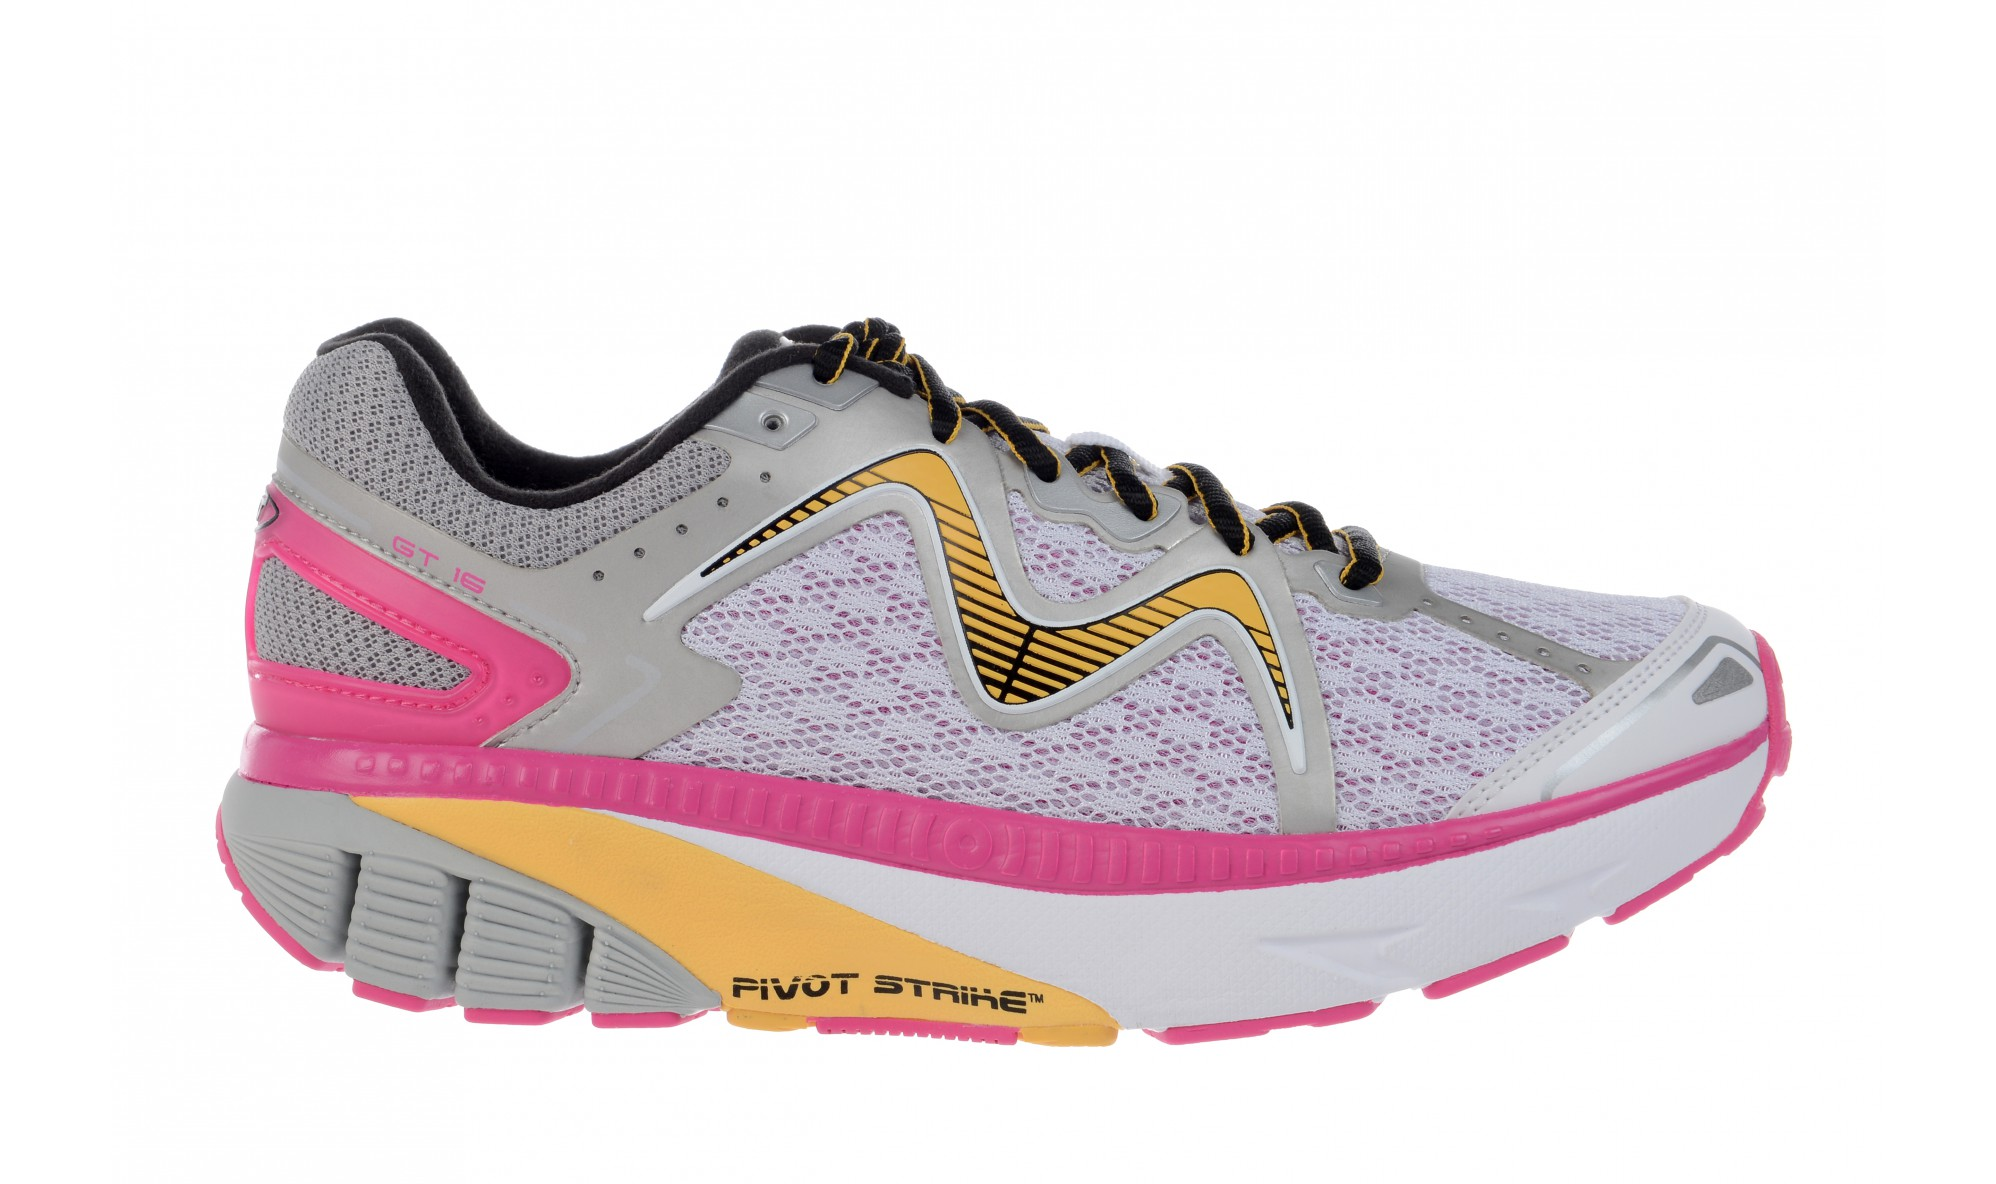 MBT Women's GT 16 White / Fuschia / Orange